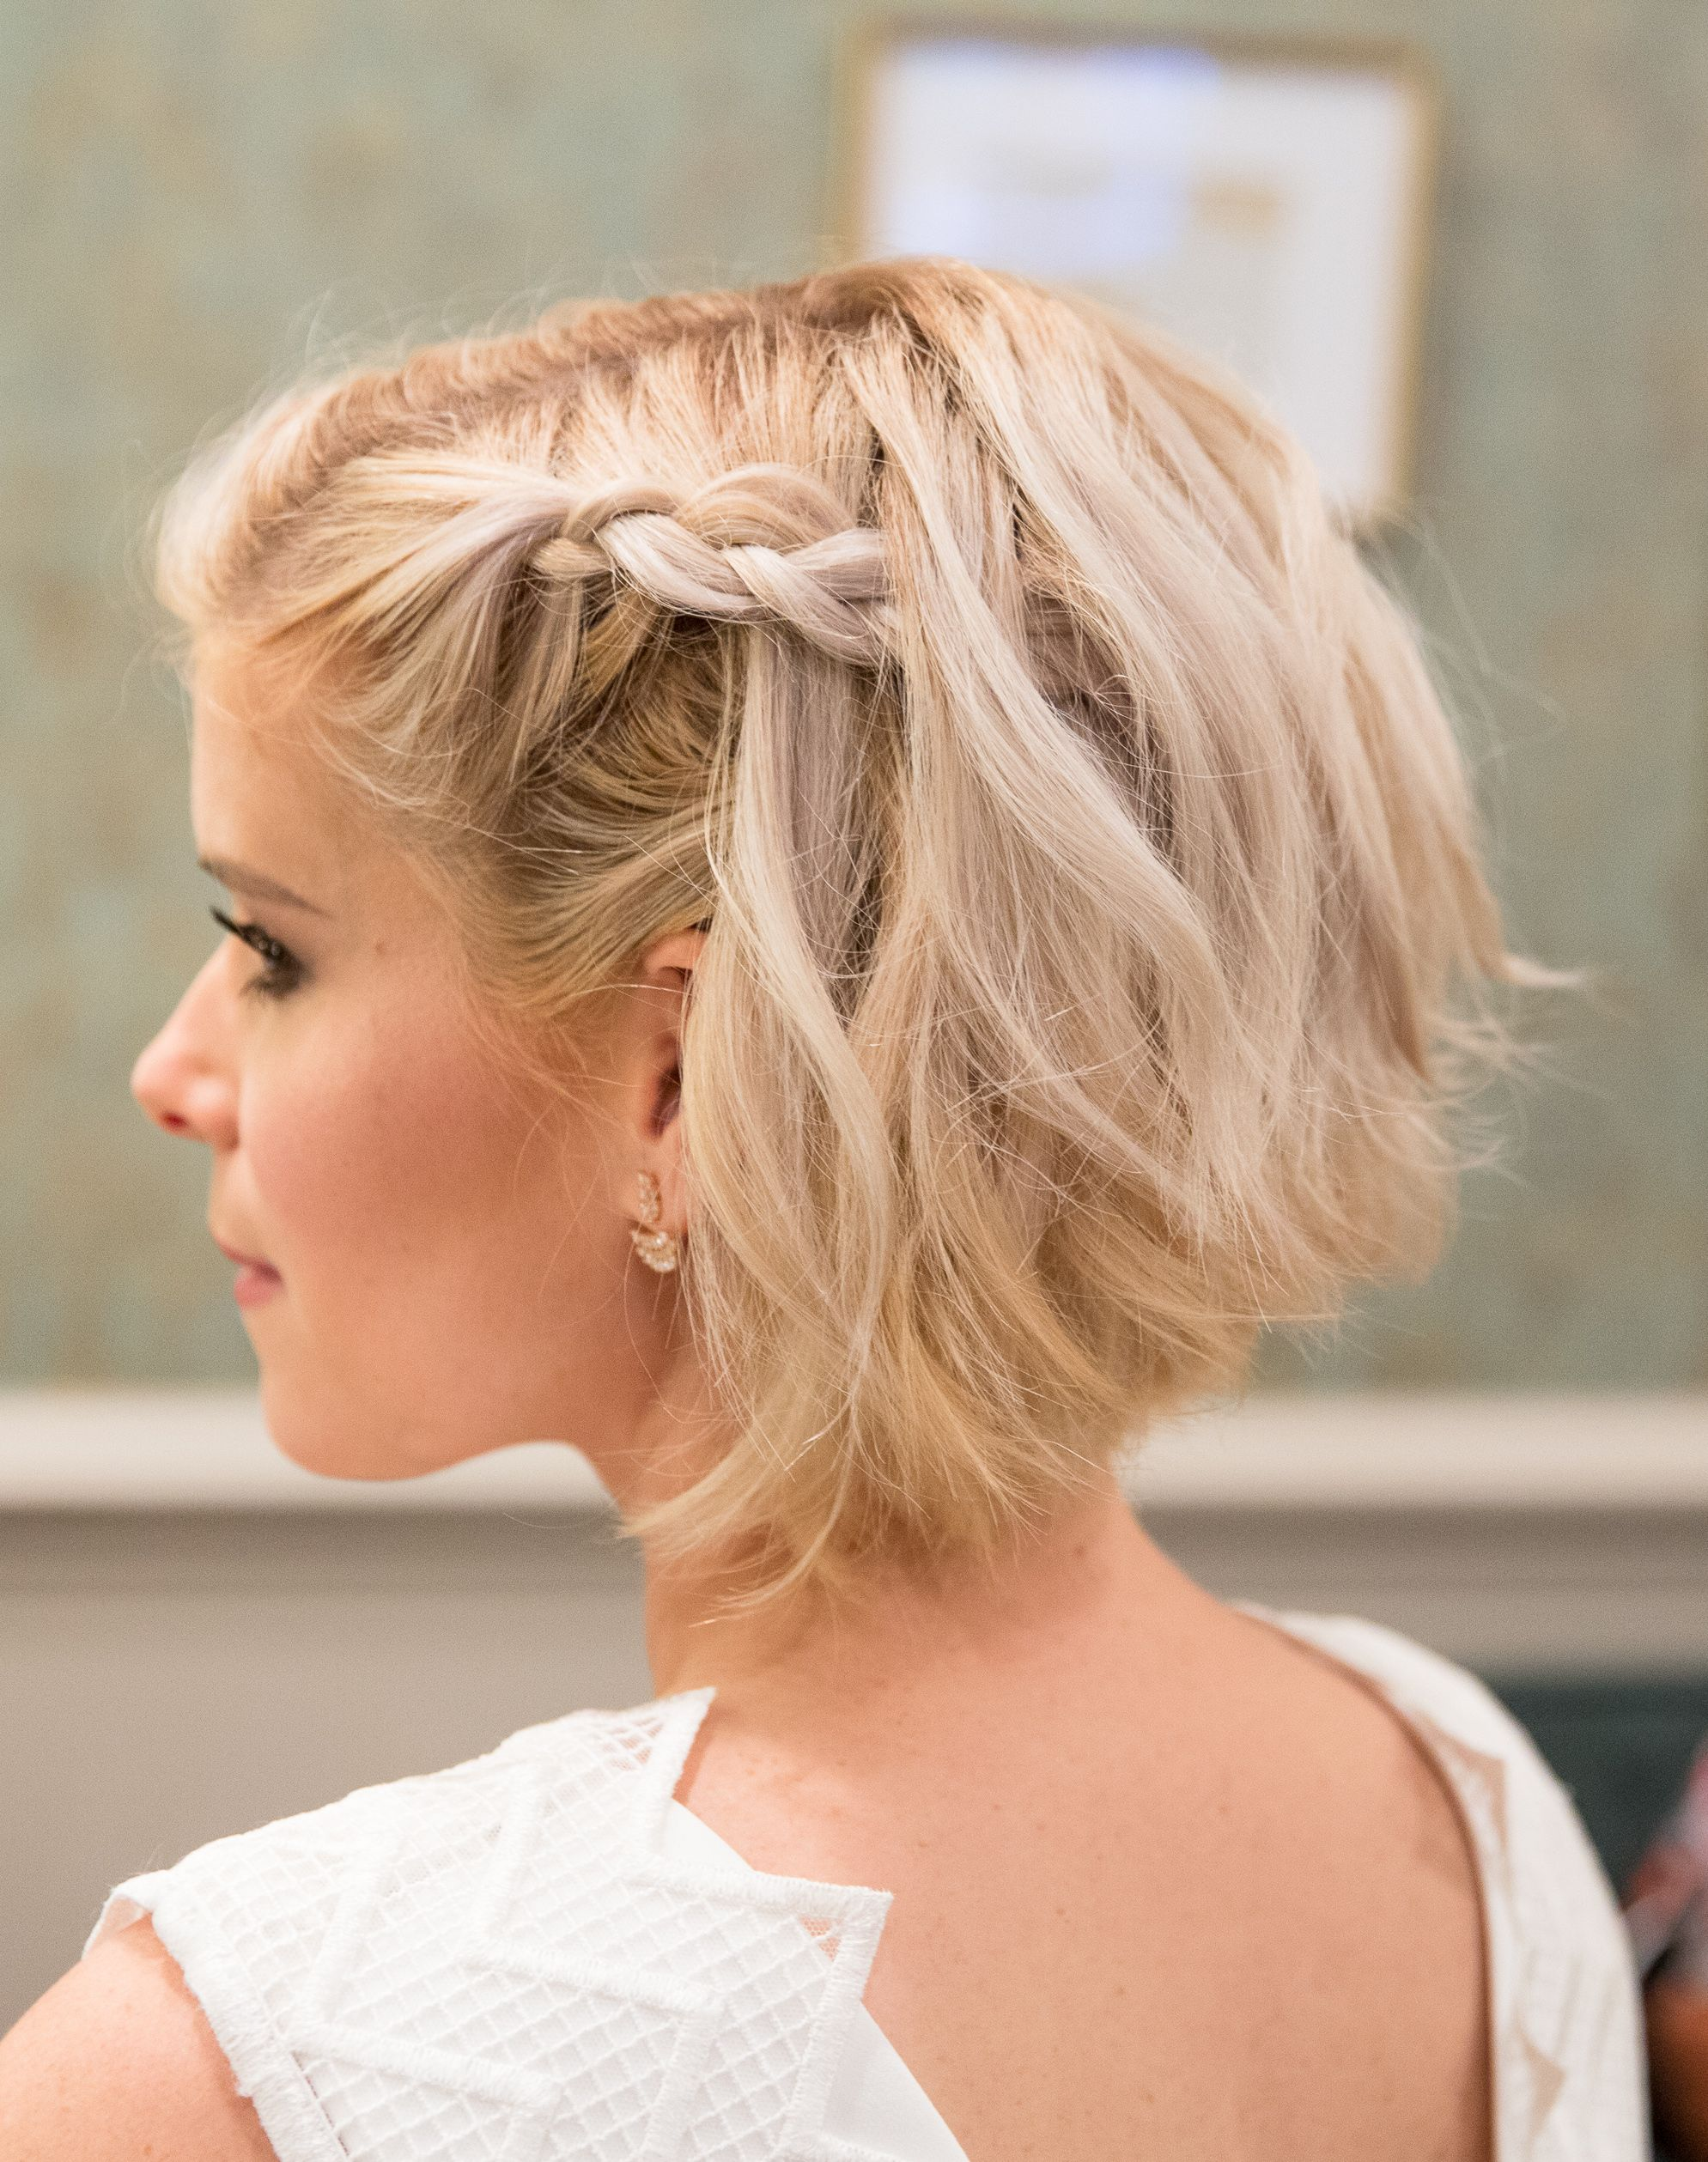 30 Jaw Dropping Short Wedding Hairstyles To Copy Now My Sweet Engagement Short Wedding Hair Hair Styles Short Hair Styles